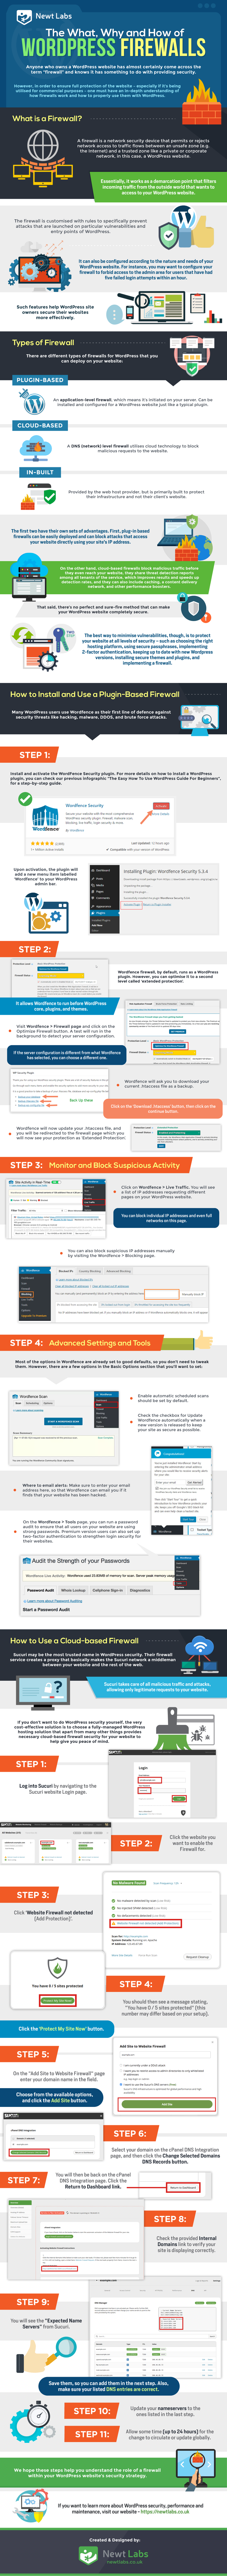 The What, Why and How of WordPress Firewalls Infographic